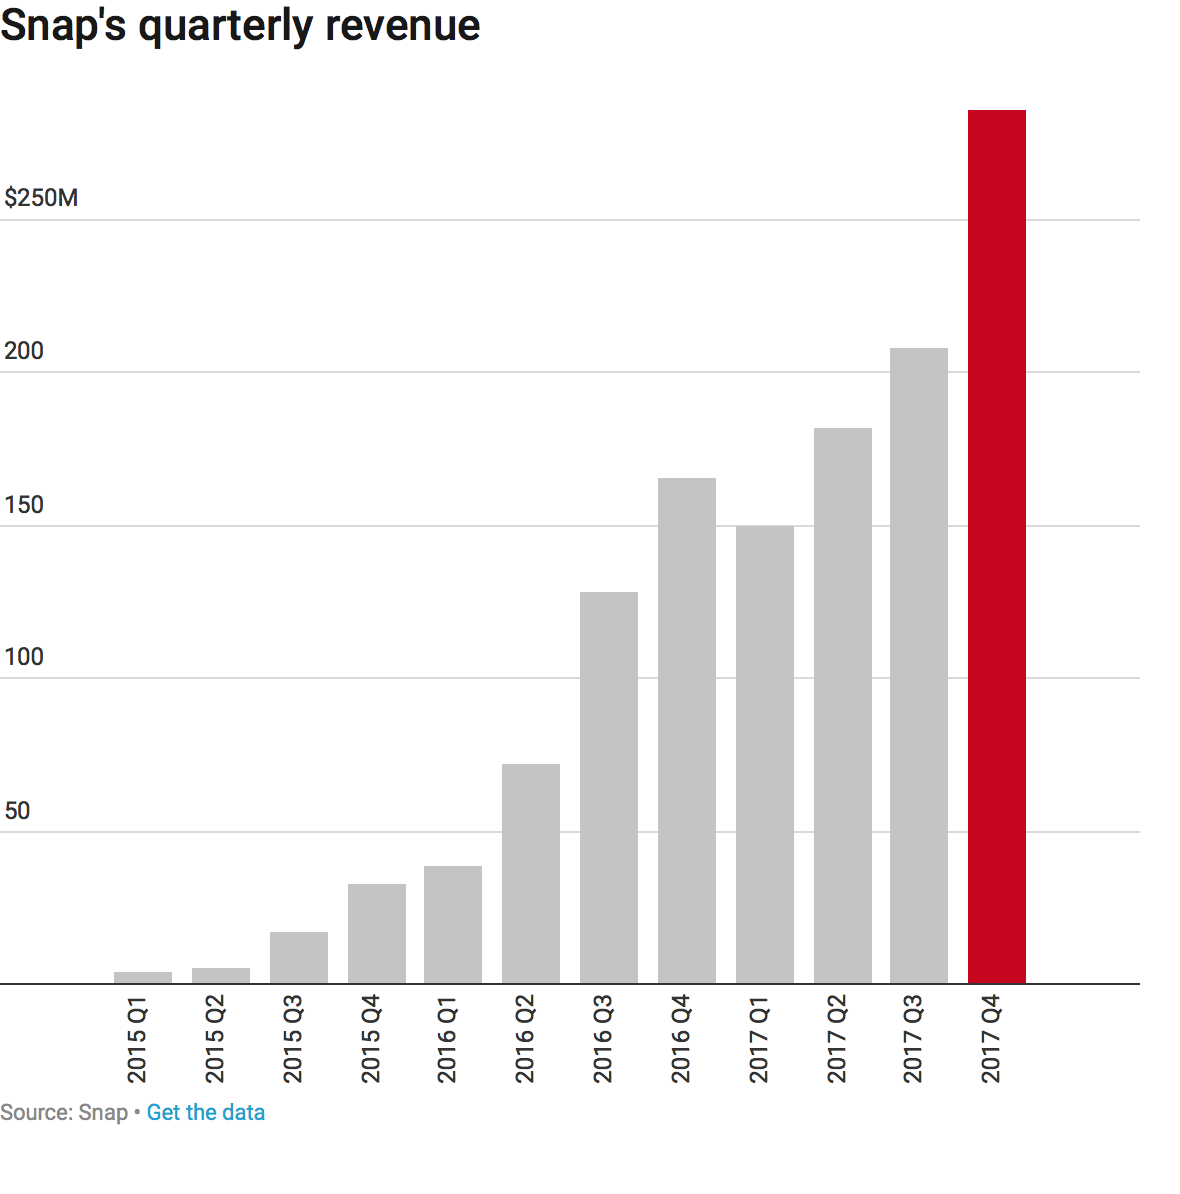 Snap Inc.'s Share Price Soars After Revenue Beats Expectations